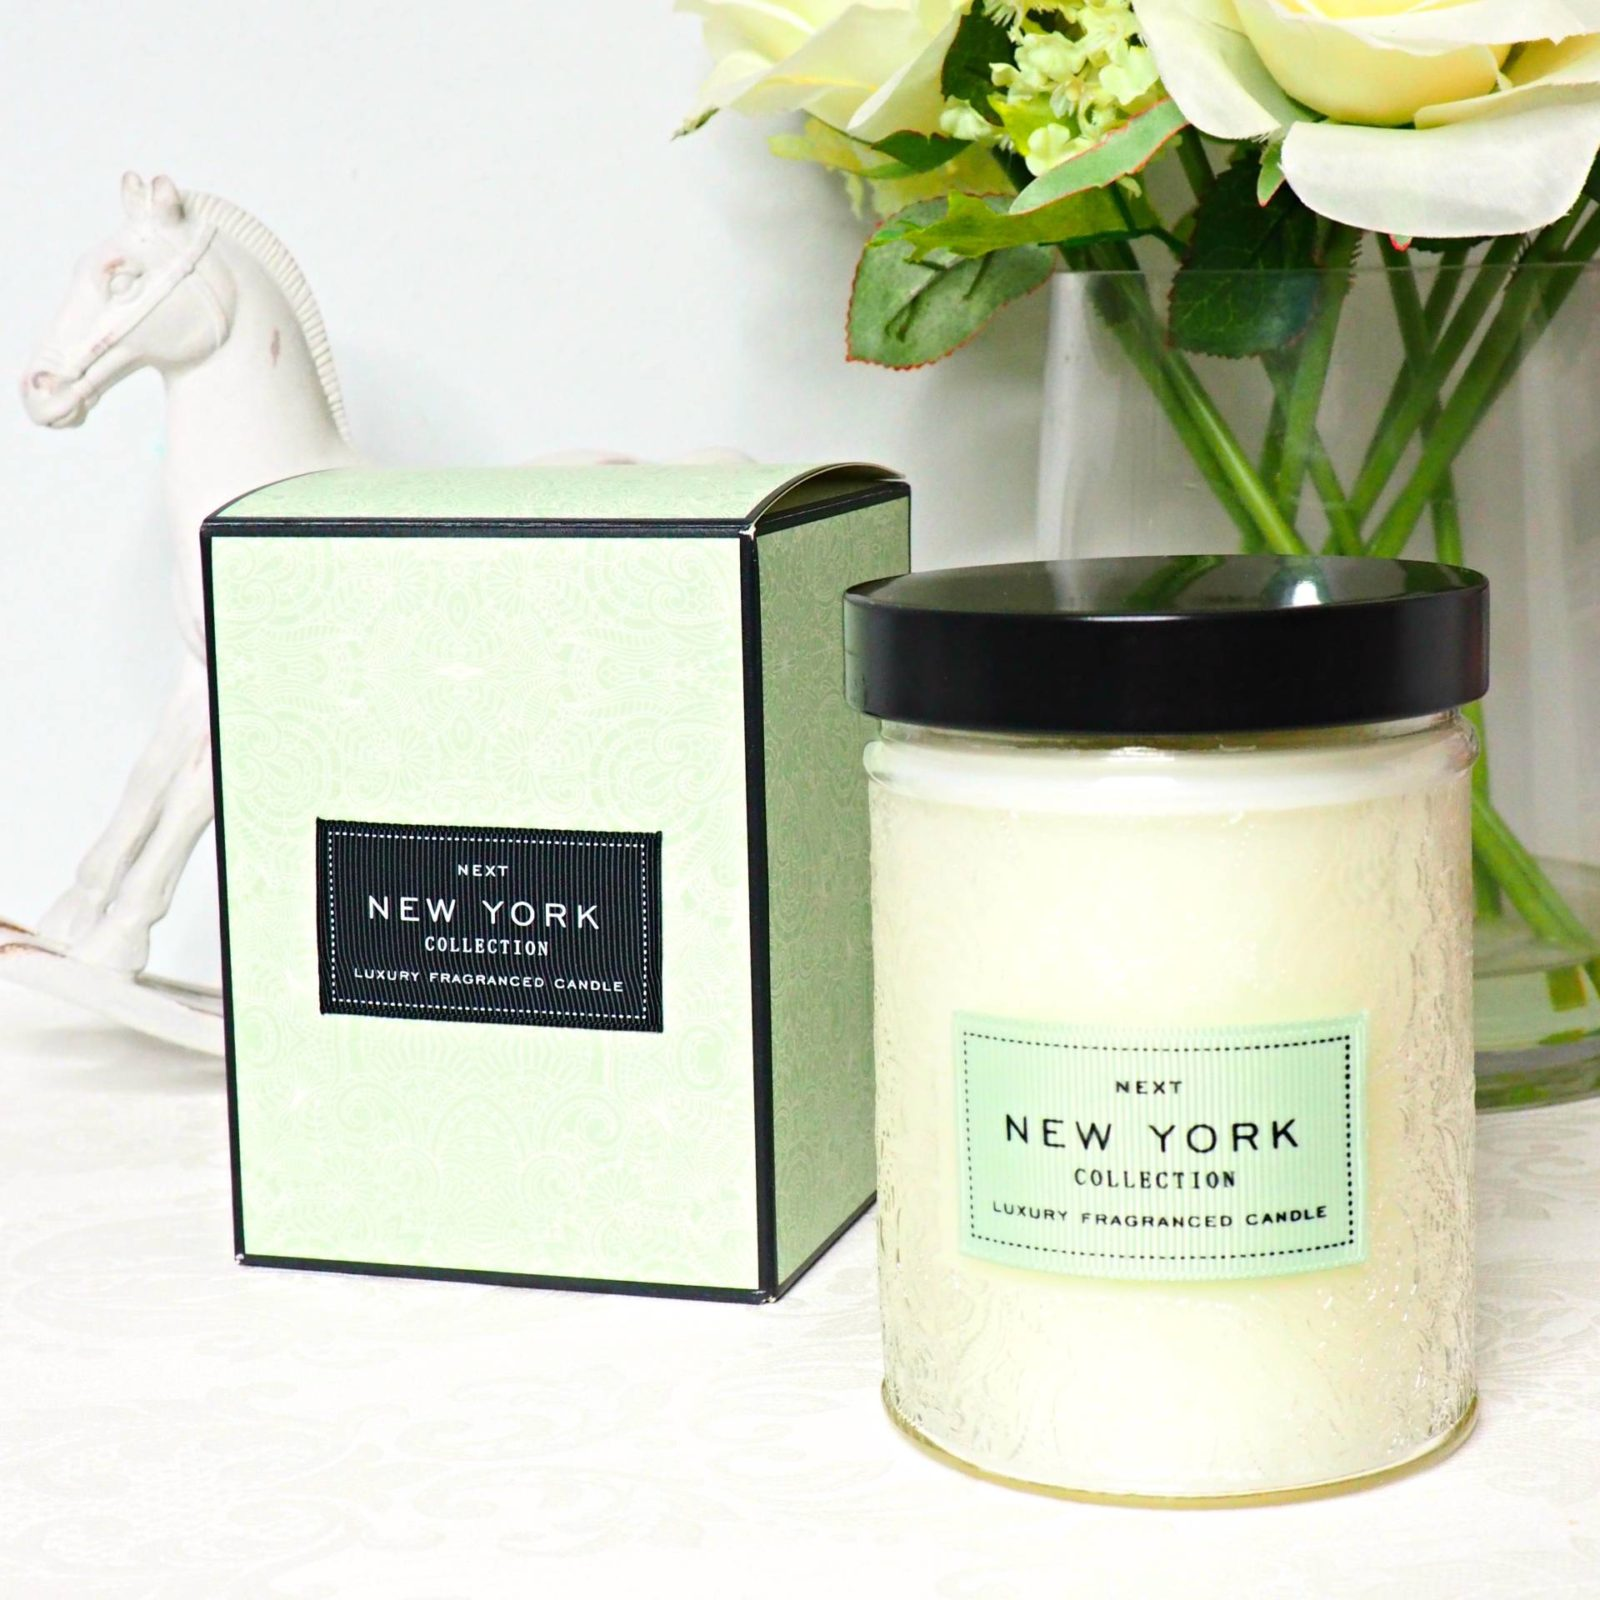 Next New York Candle